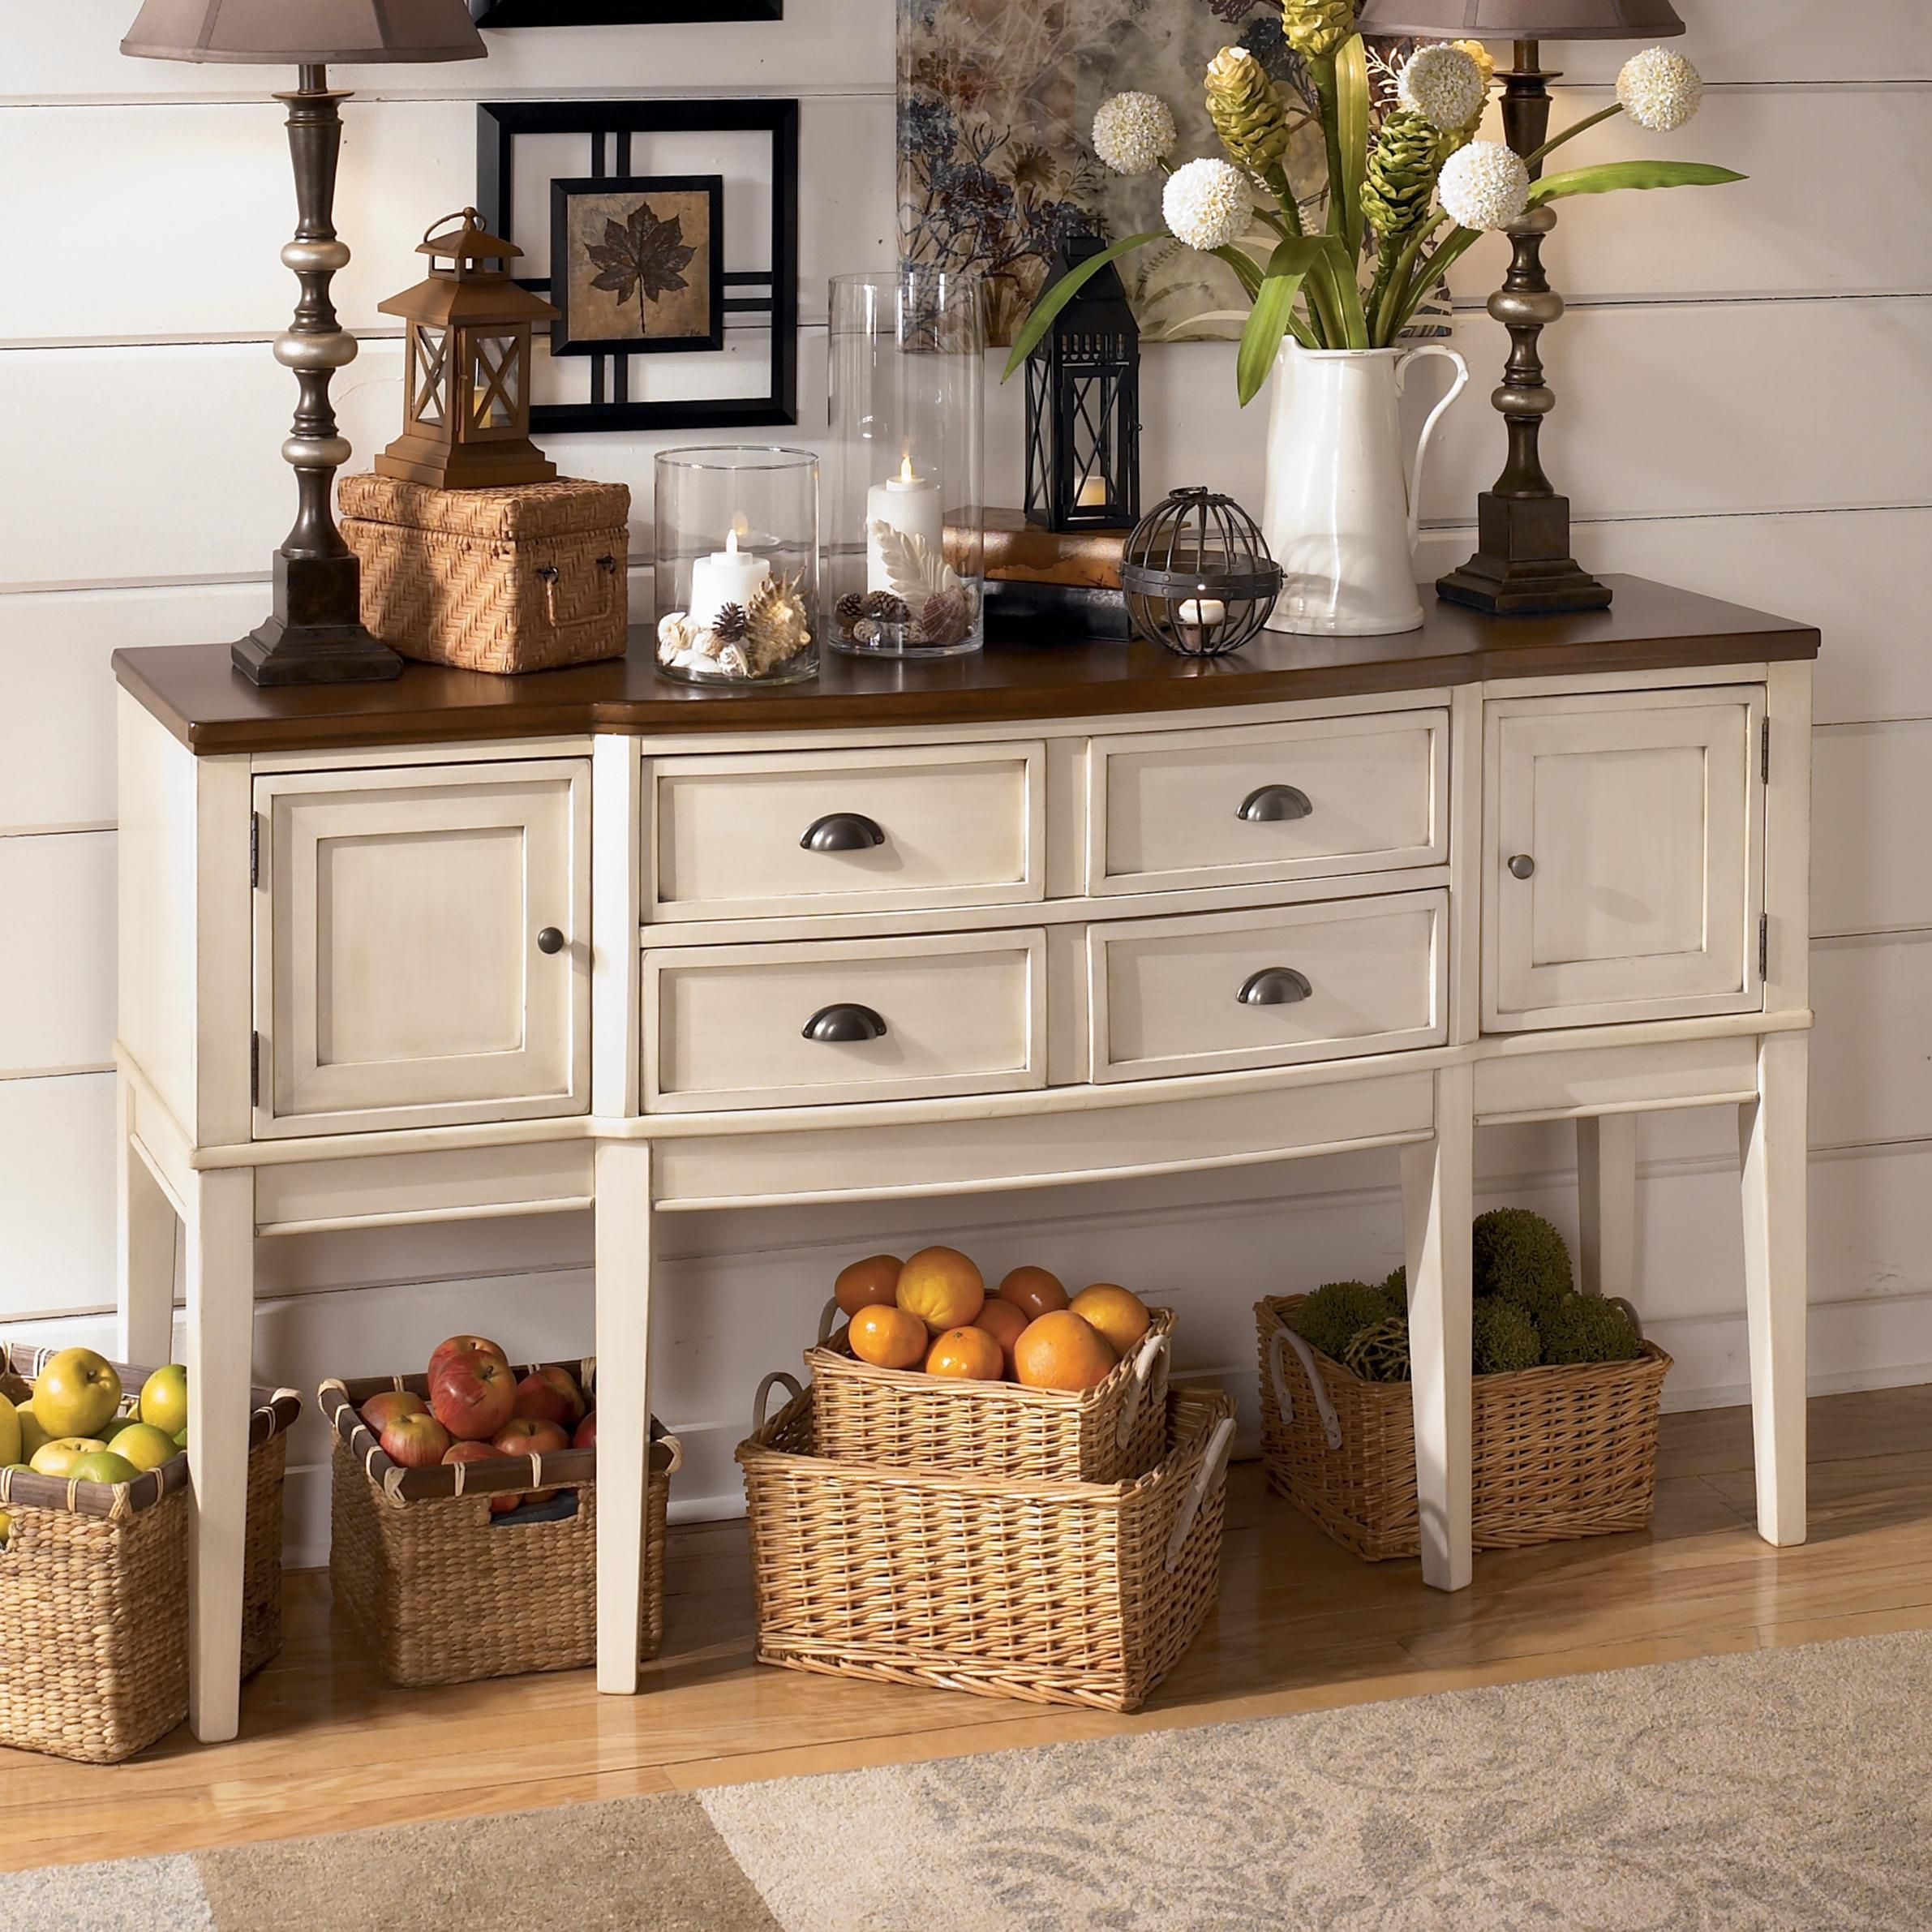 15 Small Dining Room Table Ideas Tips: Whitesburg Two-Tone Breakfront Dining Room Server By